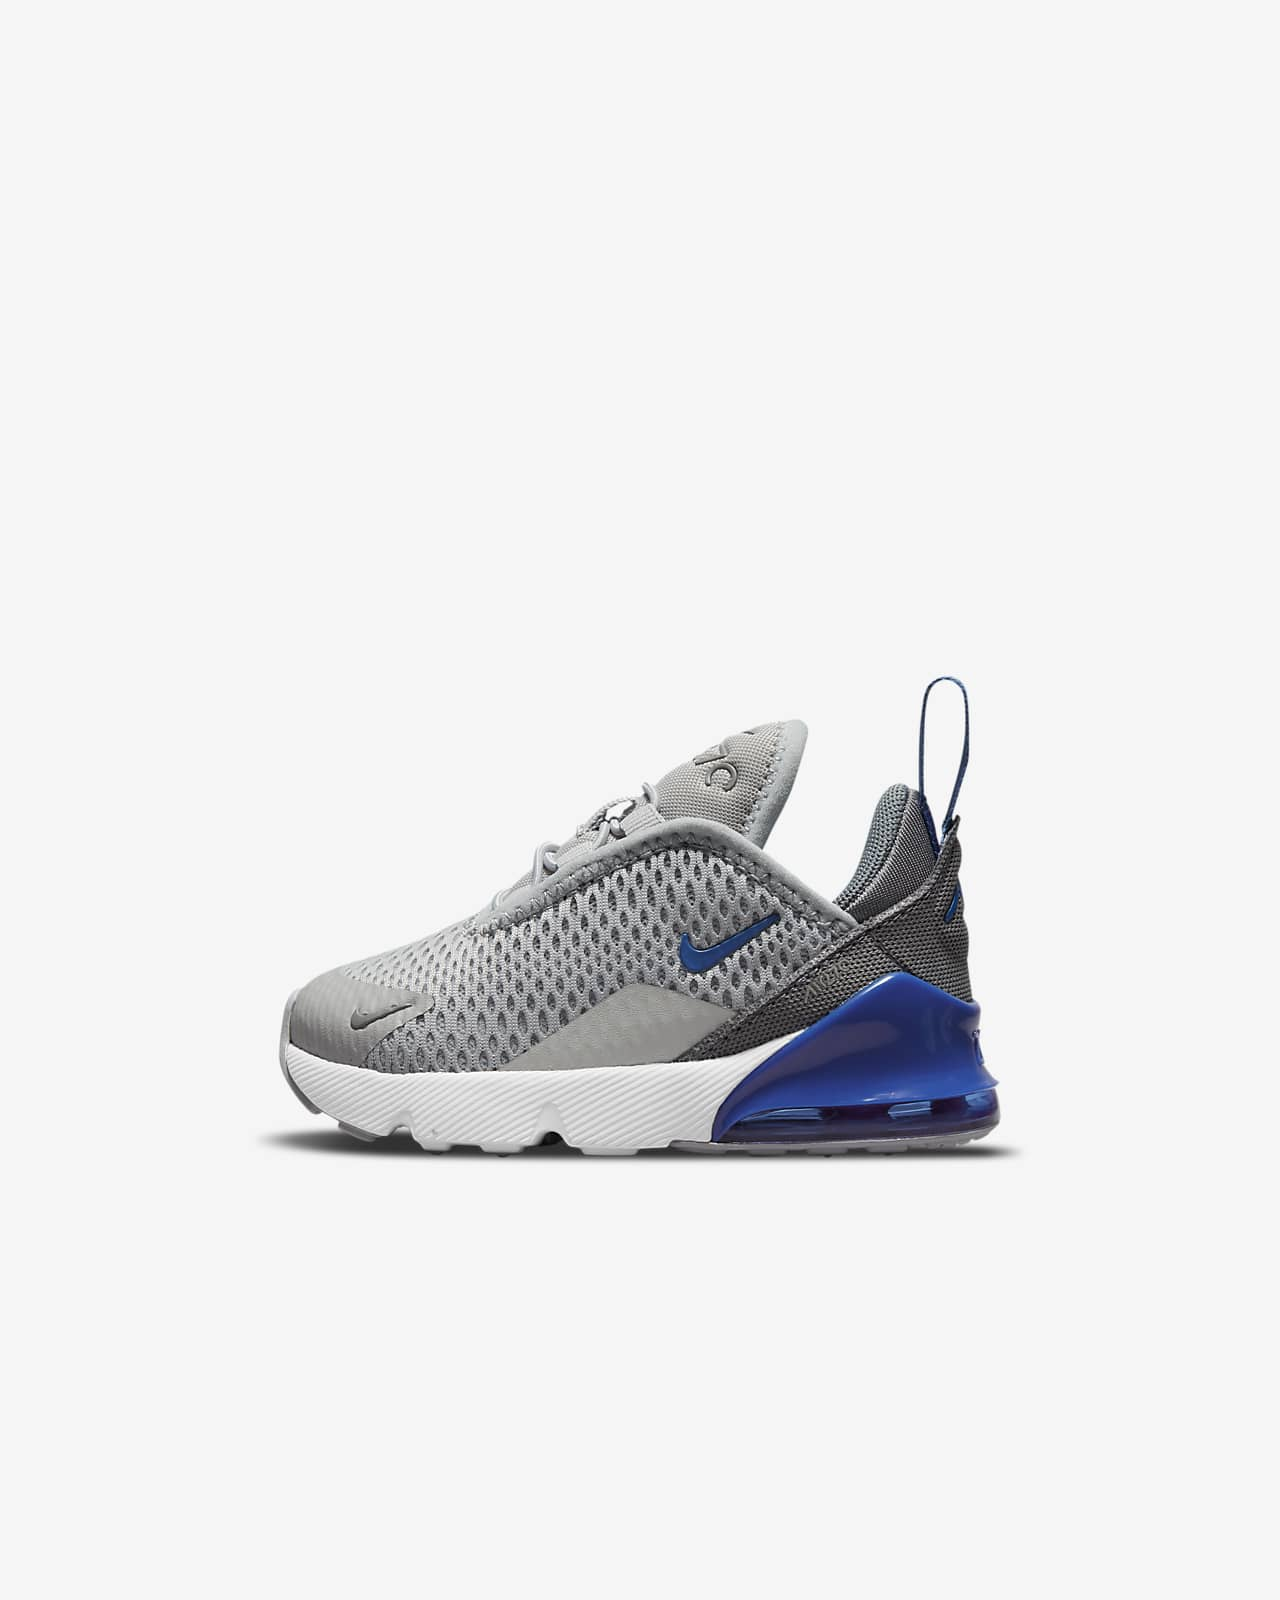 Nike Air Max 270 Baby/Toddler Shoes